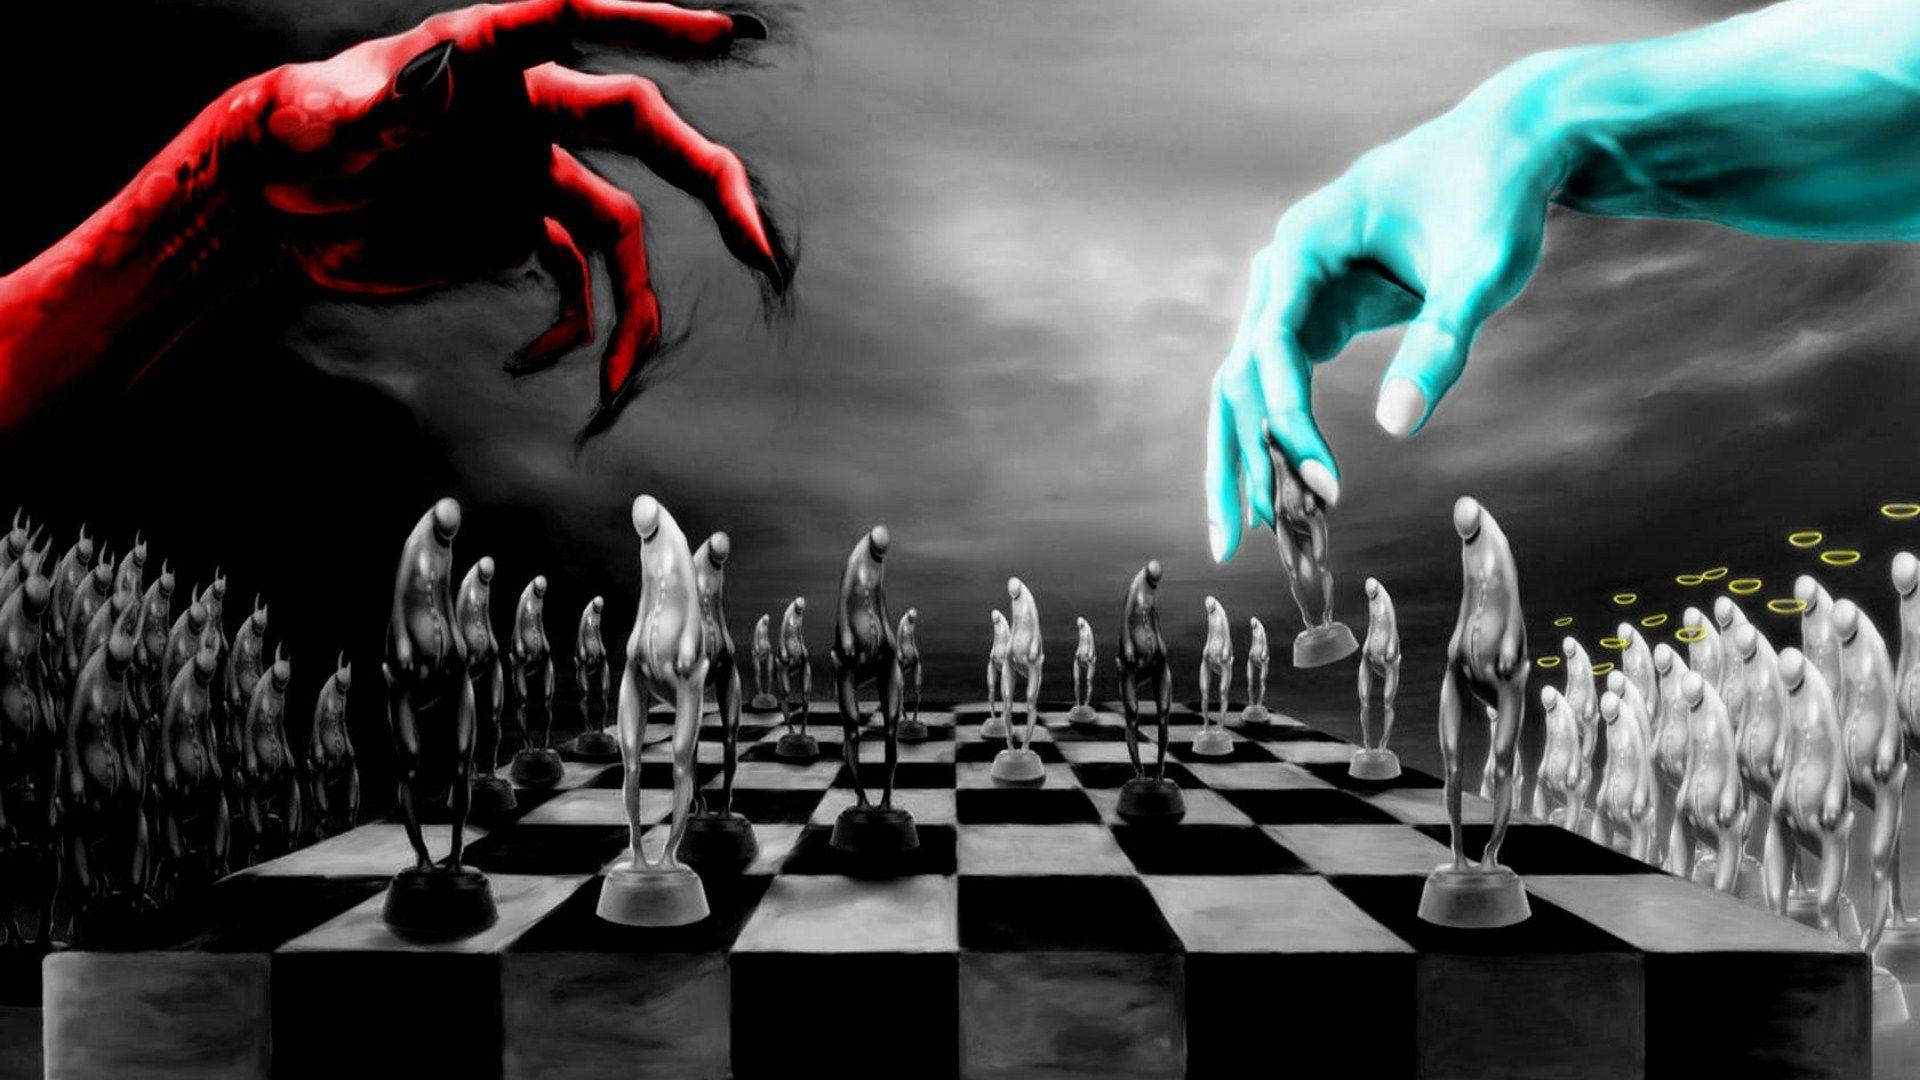 God Vs Devill Playing Chess HD Wallpapers 1920x1080